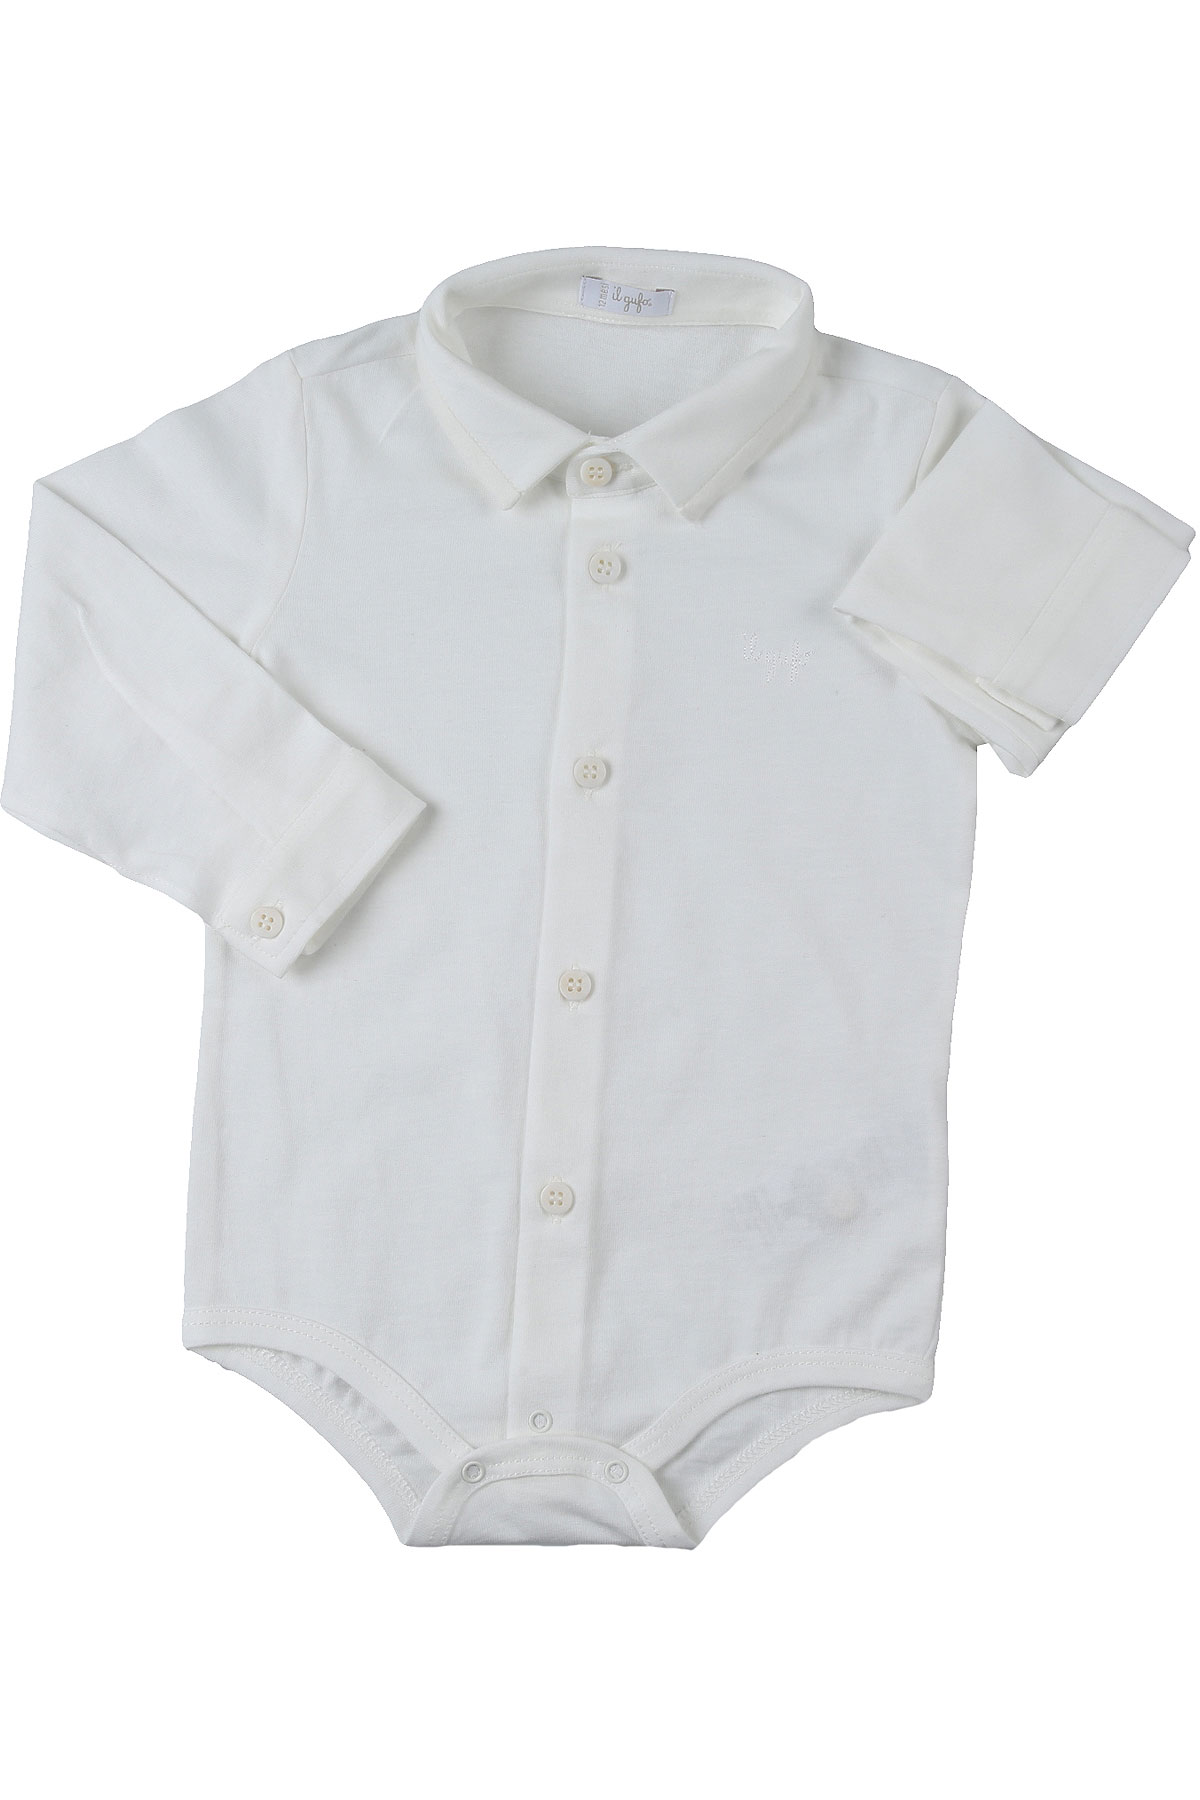 Il Gufo Baby Bodysuits & Onesies for Boys On Sale, White, Cotton, 2019, 12 M 18M 2Y 6M 9M